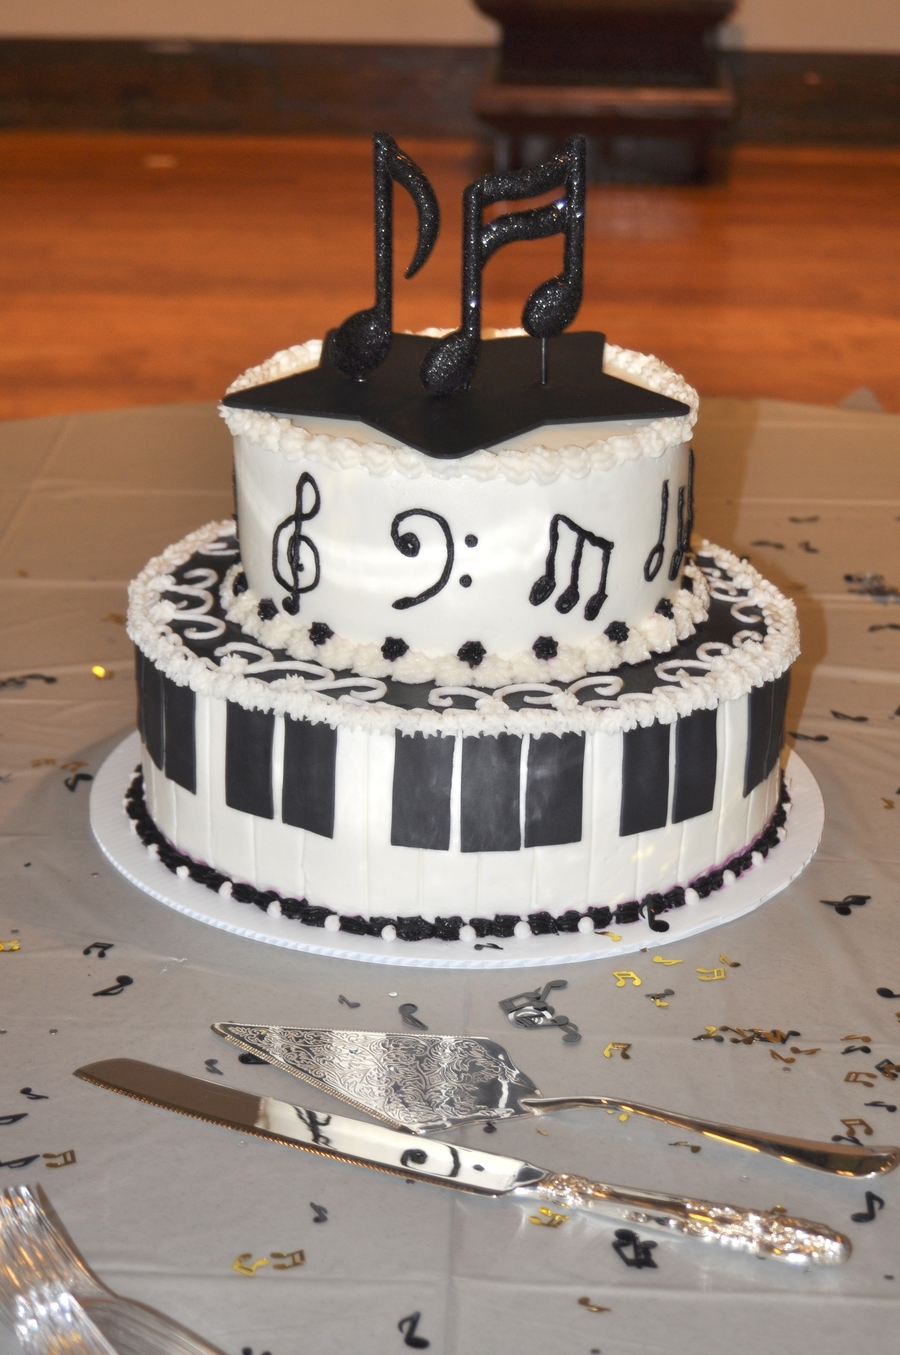 Andrew's Recital Cake on Cake Central